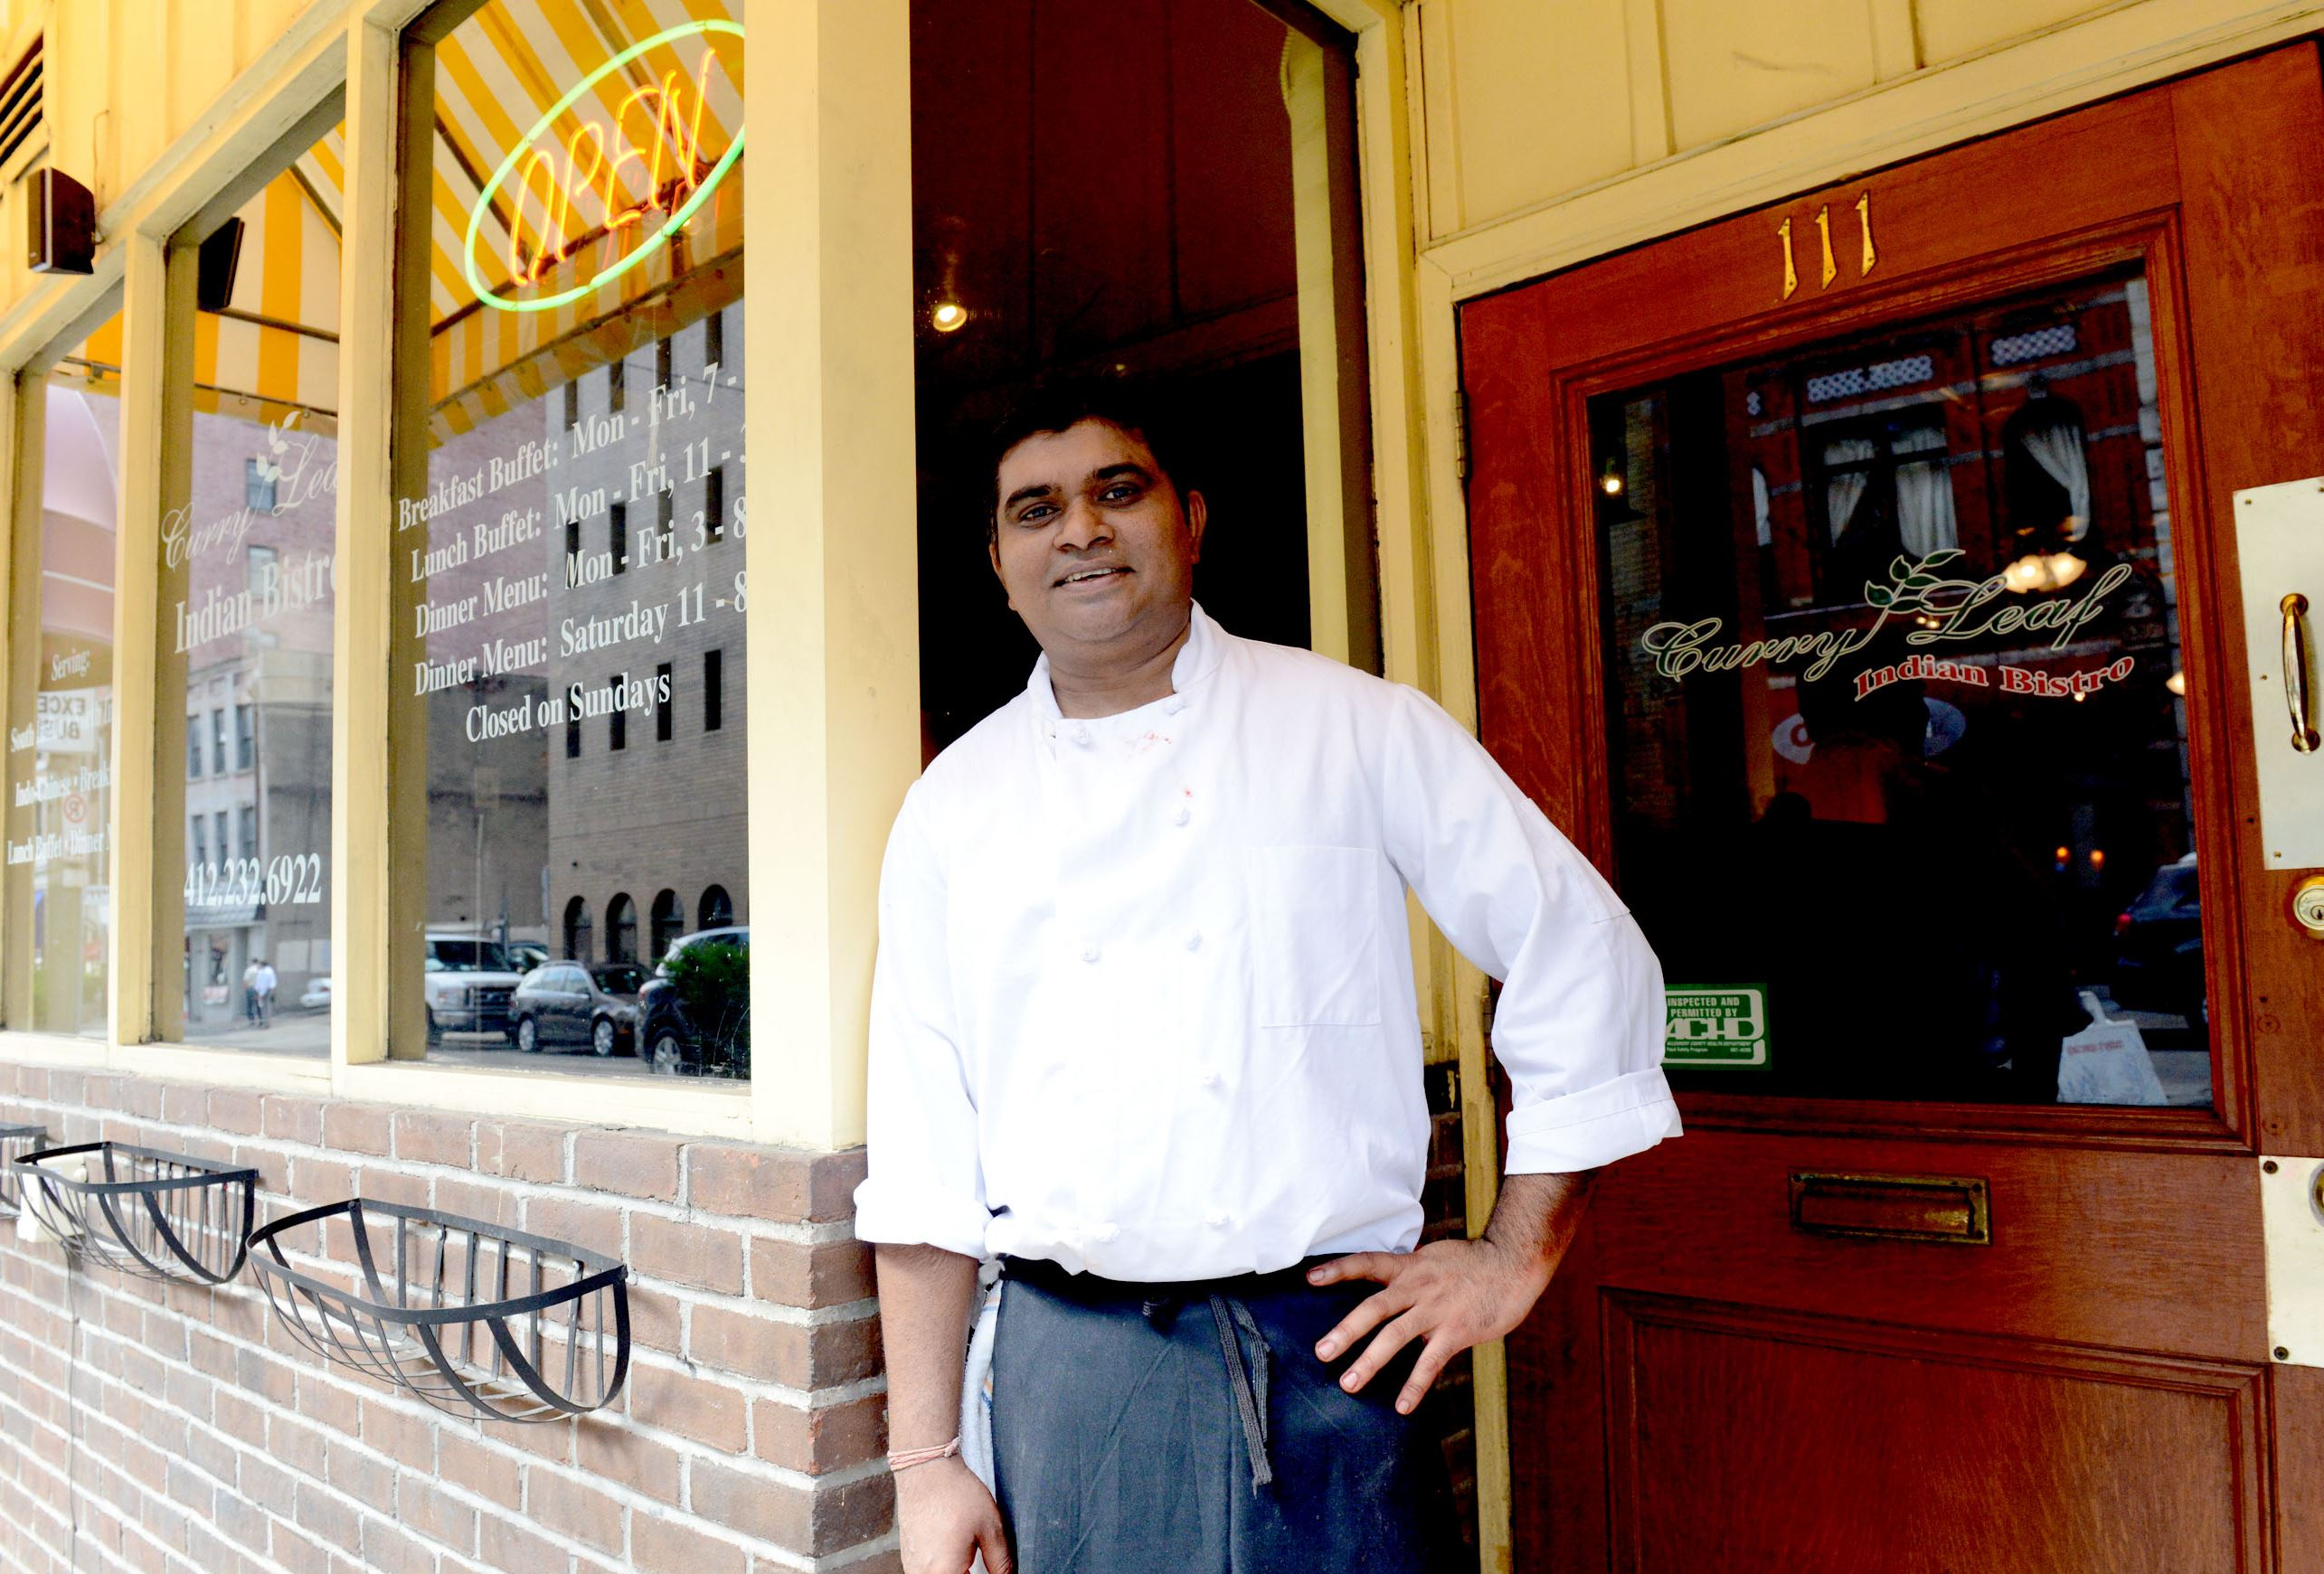 20140911ppTable0918WKNDMAG2-1 Prassana Kumar, owner & chef of Curry Leaf Indian Bistro, is among the ethnic restaurants on Smithfield Street, Downtown.